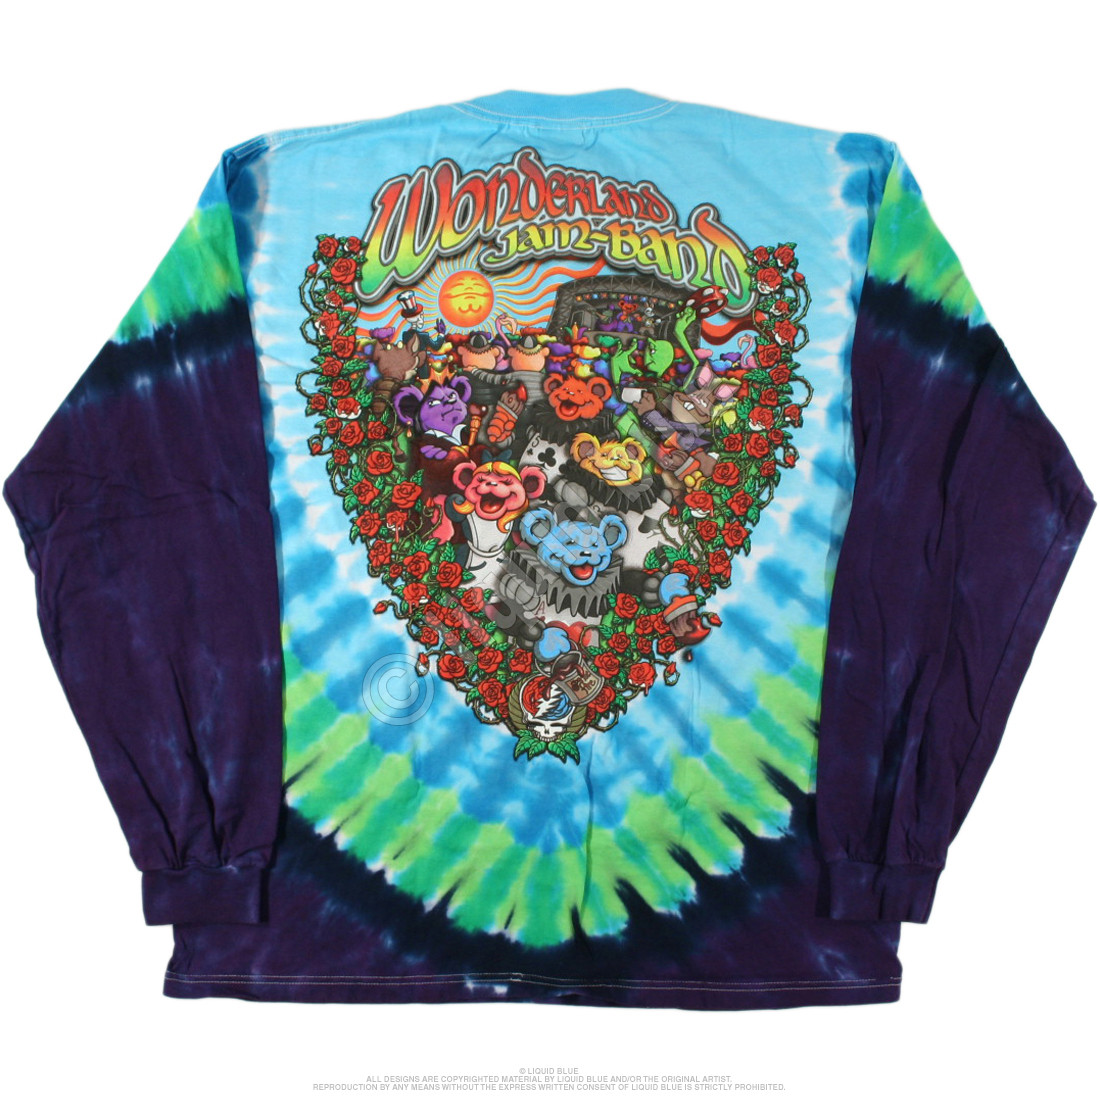 Wonderland Jamband Tie-Dye Long Sleeve T-Shirt